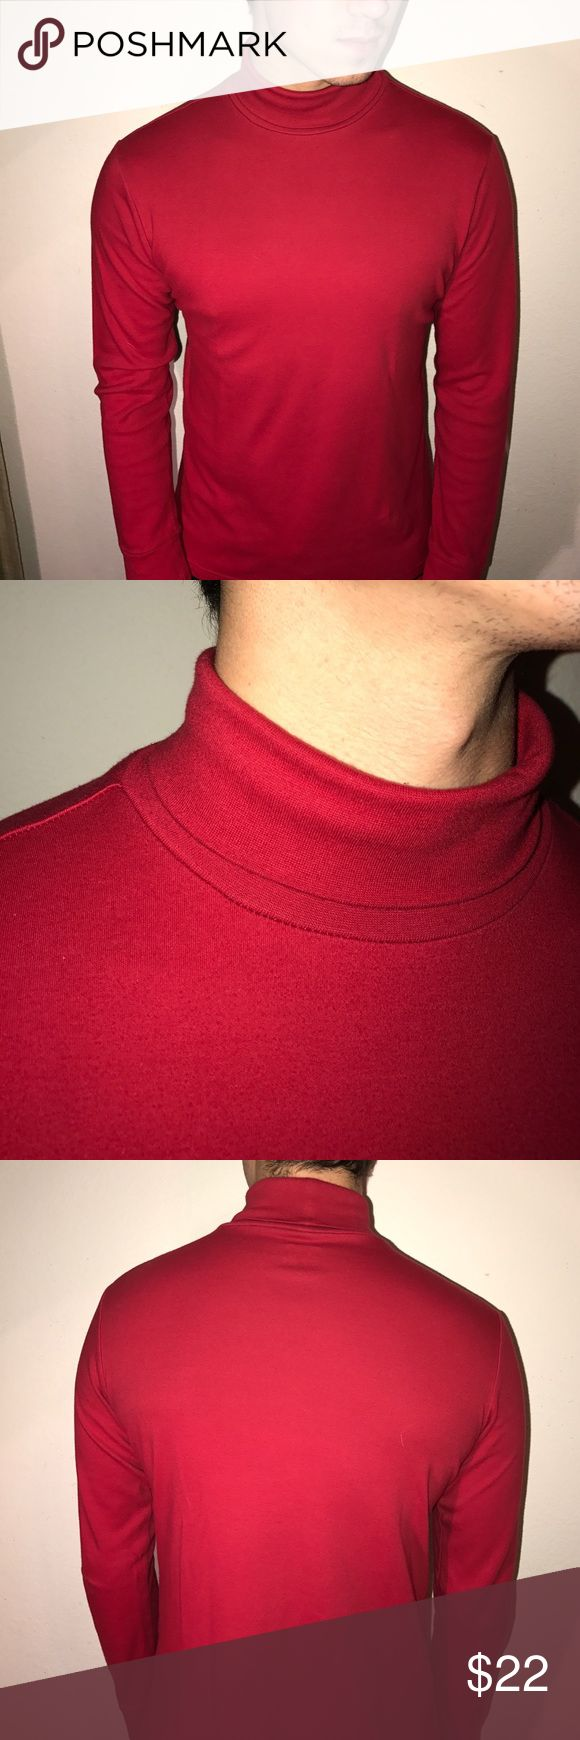 Red Cherokee men's turtleneck Relaxed, and comfortable red Cherokee men's turtleneck. XL 16/18 100% cotton. No stains! Worn once! Cherokee Sweaters Turtleneck